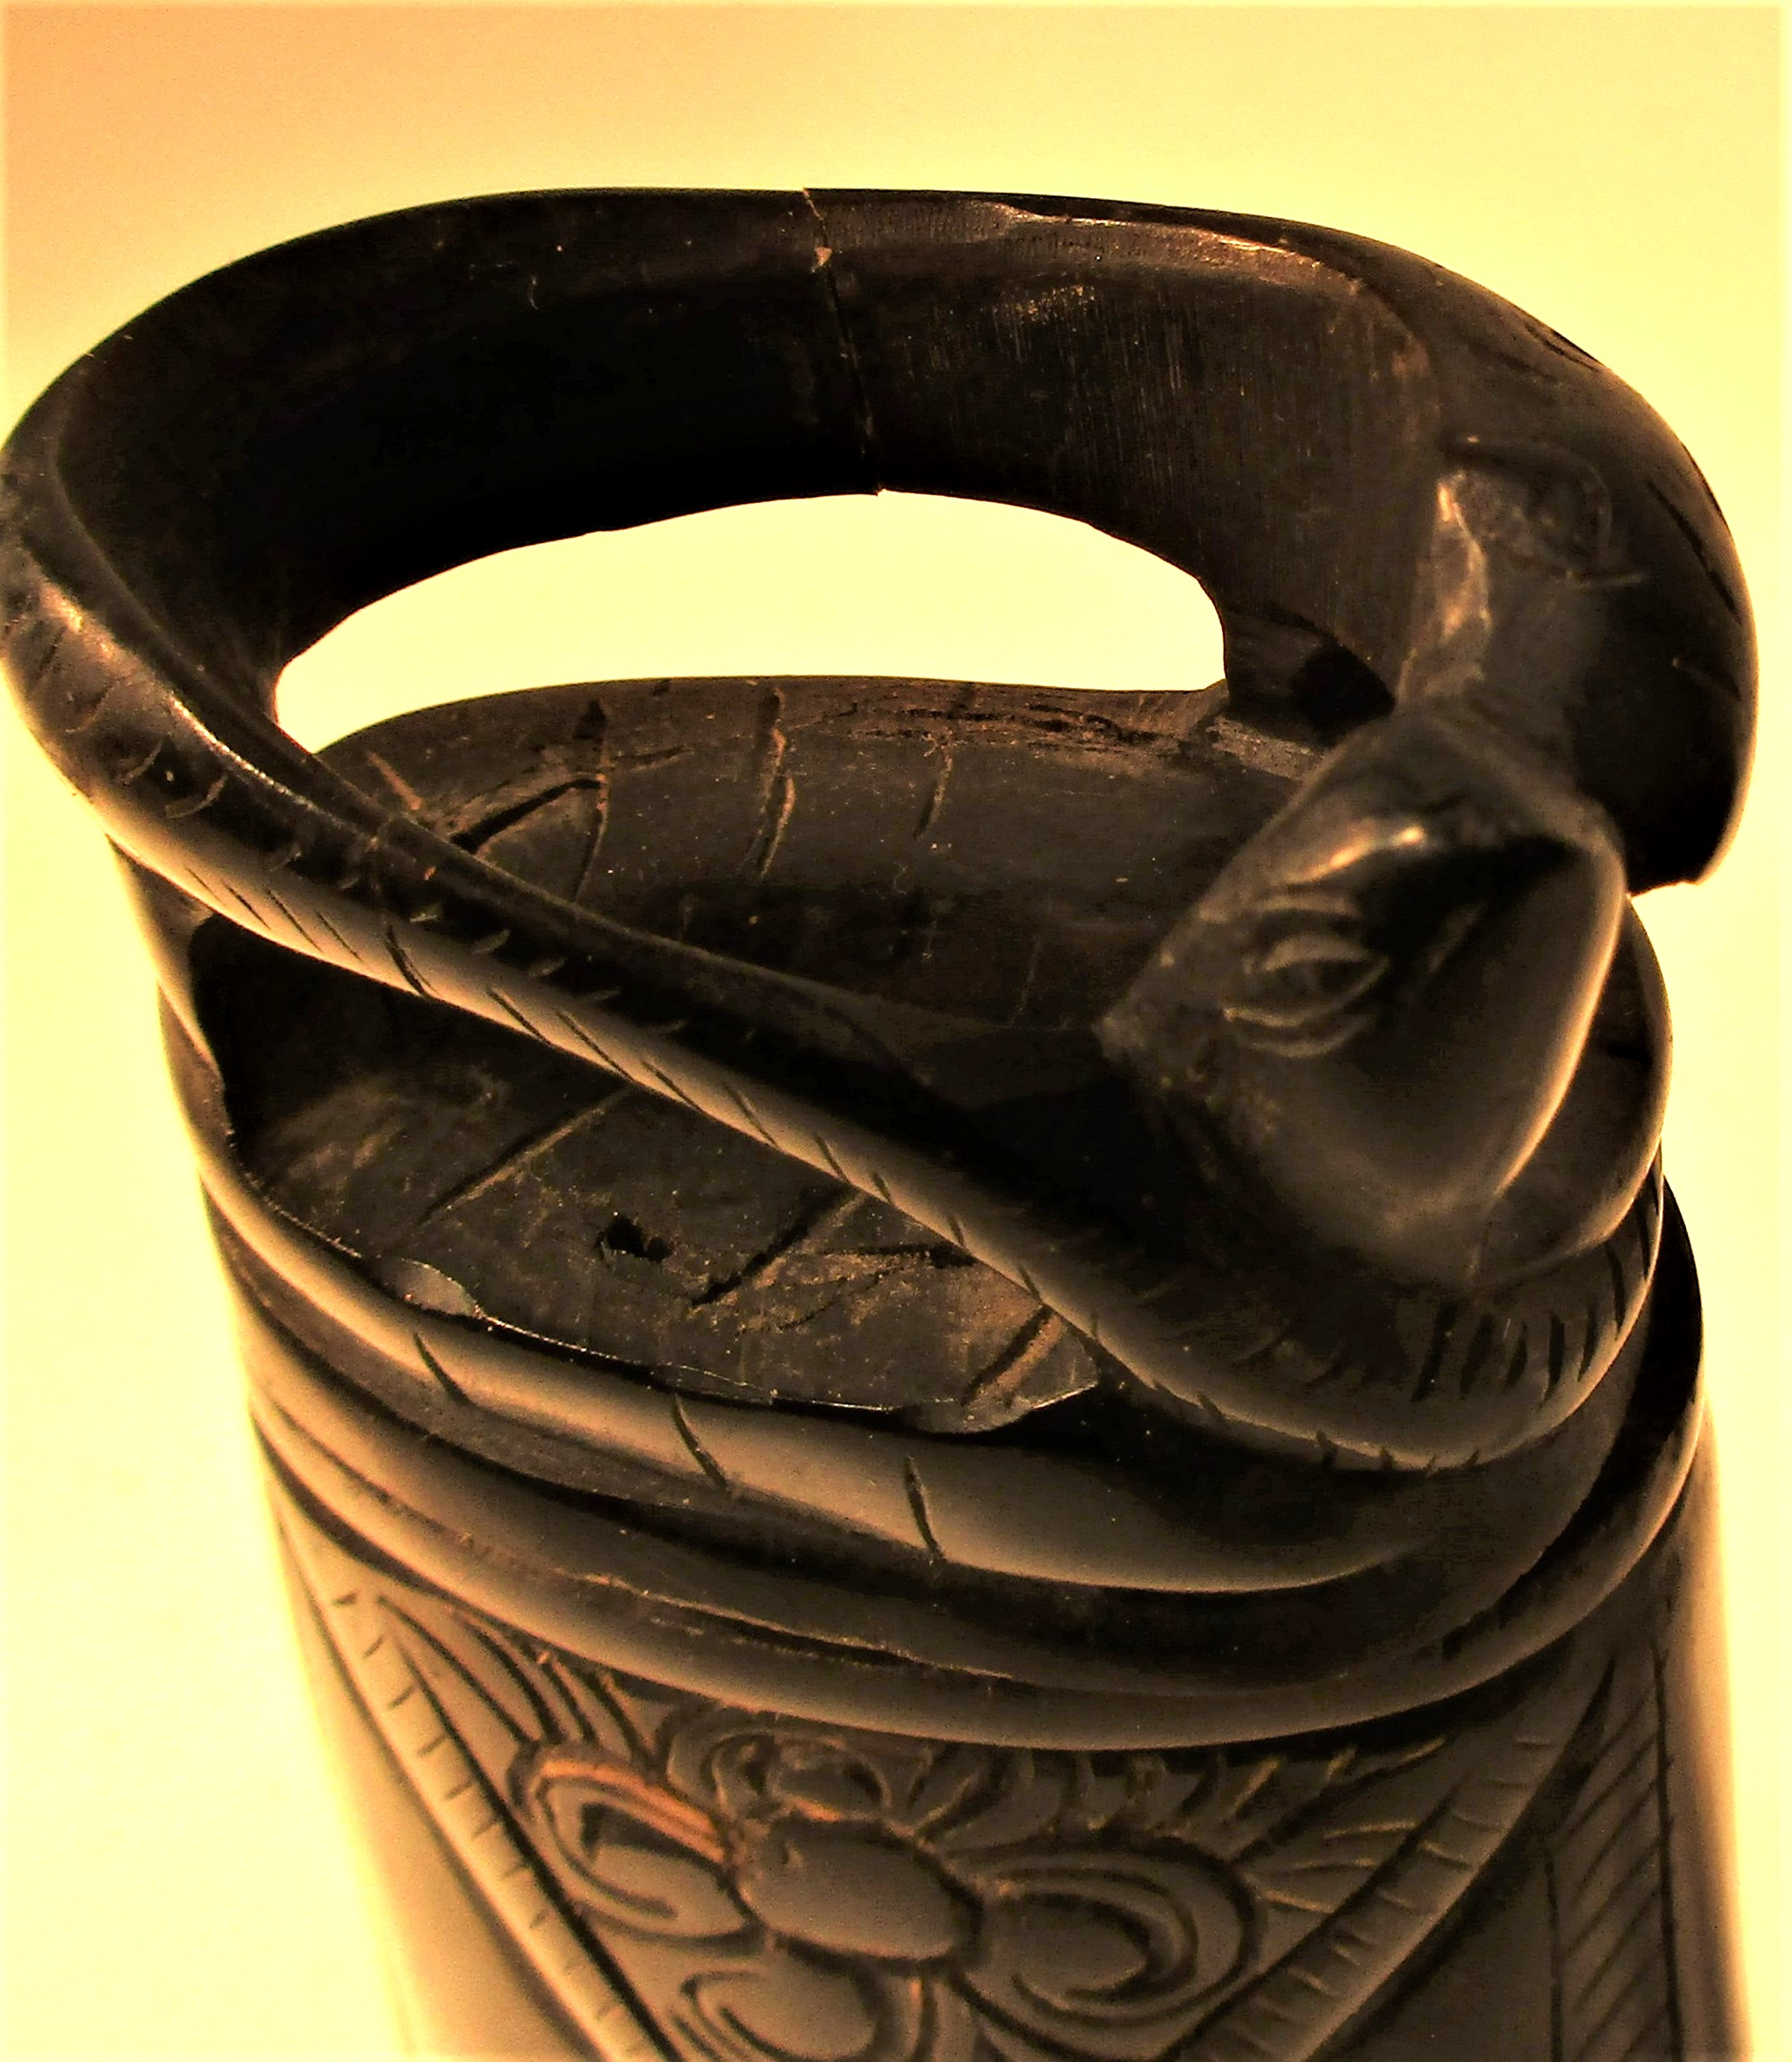 Horn ignition powder container, Torba Batak. Made from water buffalo horn.15 x 7cm. Late 20th c. - Image 4 of 4